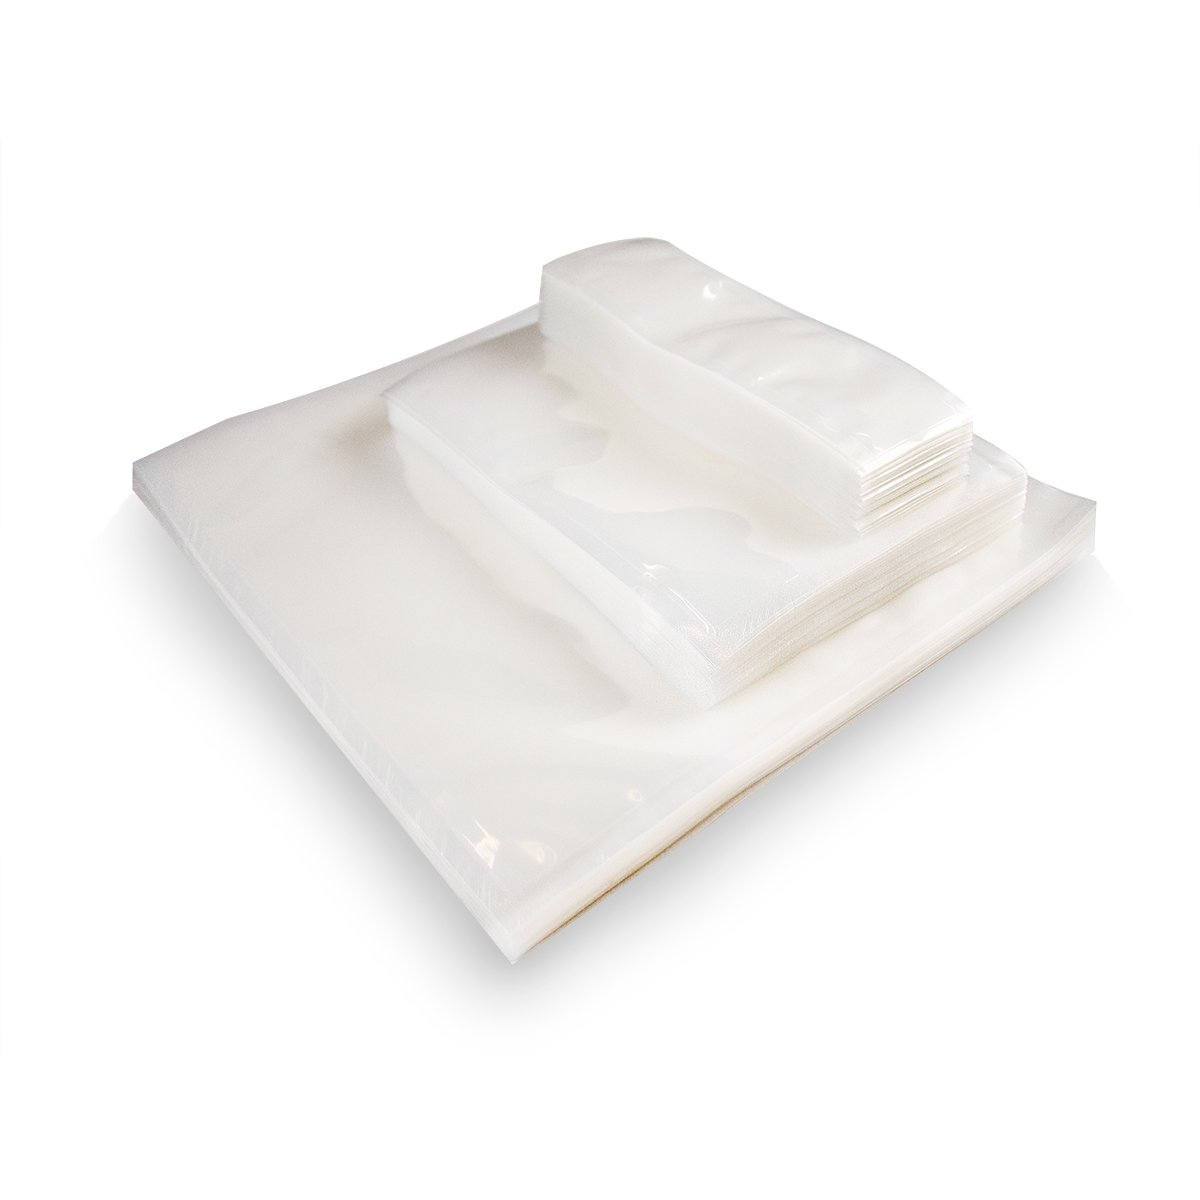 UltraSource Vacuum Chamber Pouches, 12 x 16, 3 mil (Box of 500)